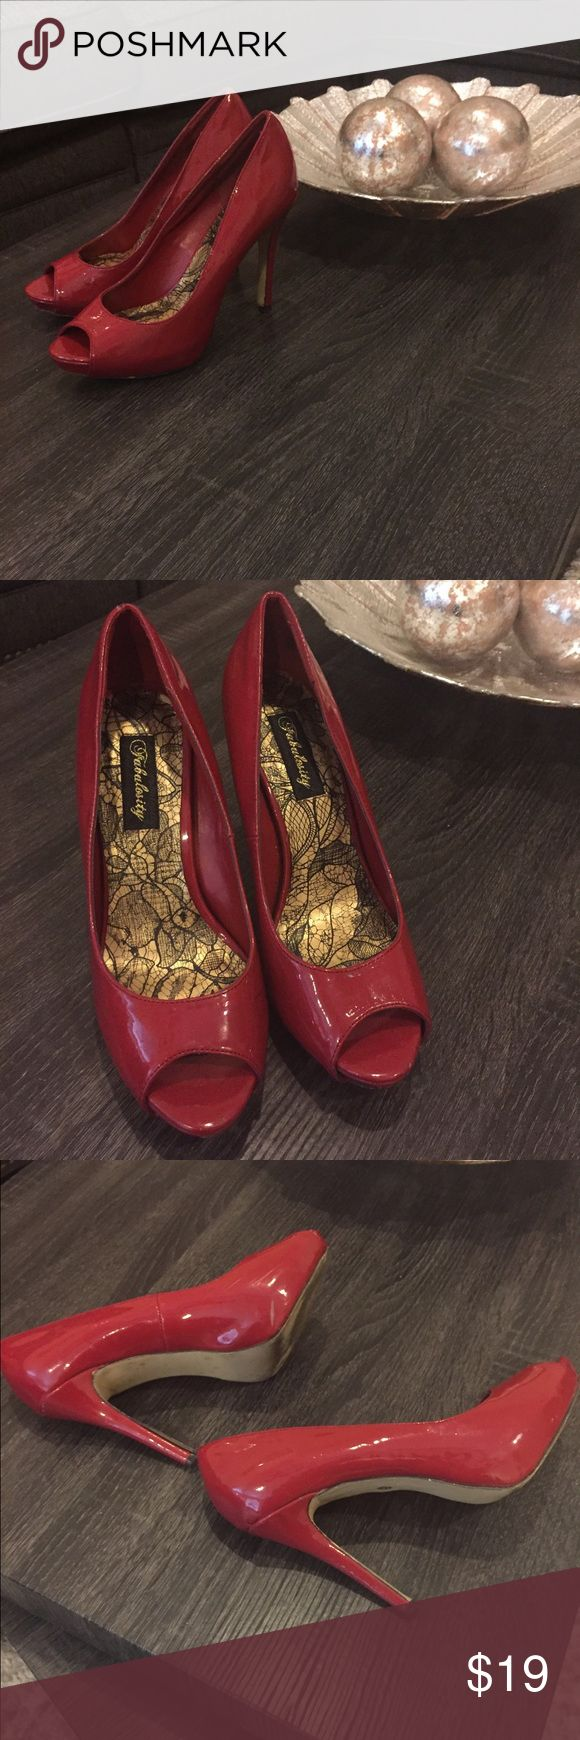 Red peep toe pumps 👠 Red Peep Toe Pumps Size 7.5.  Scuff marks on the inside of one of the shoes. Fabulosity Shoes Heels